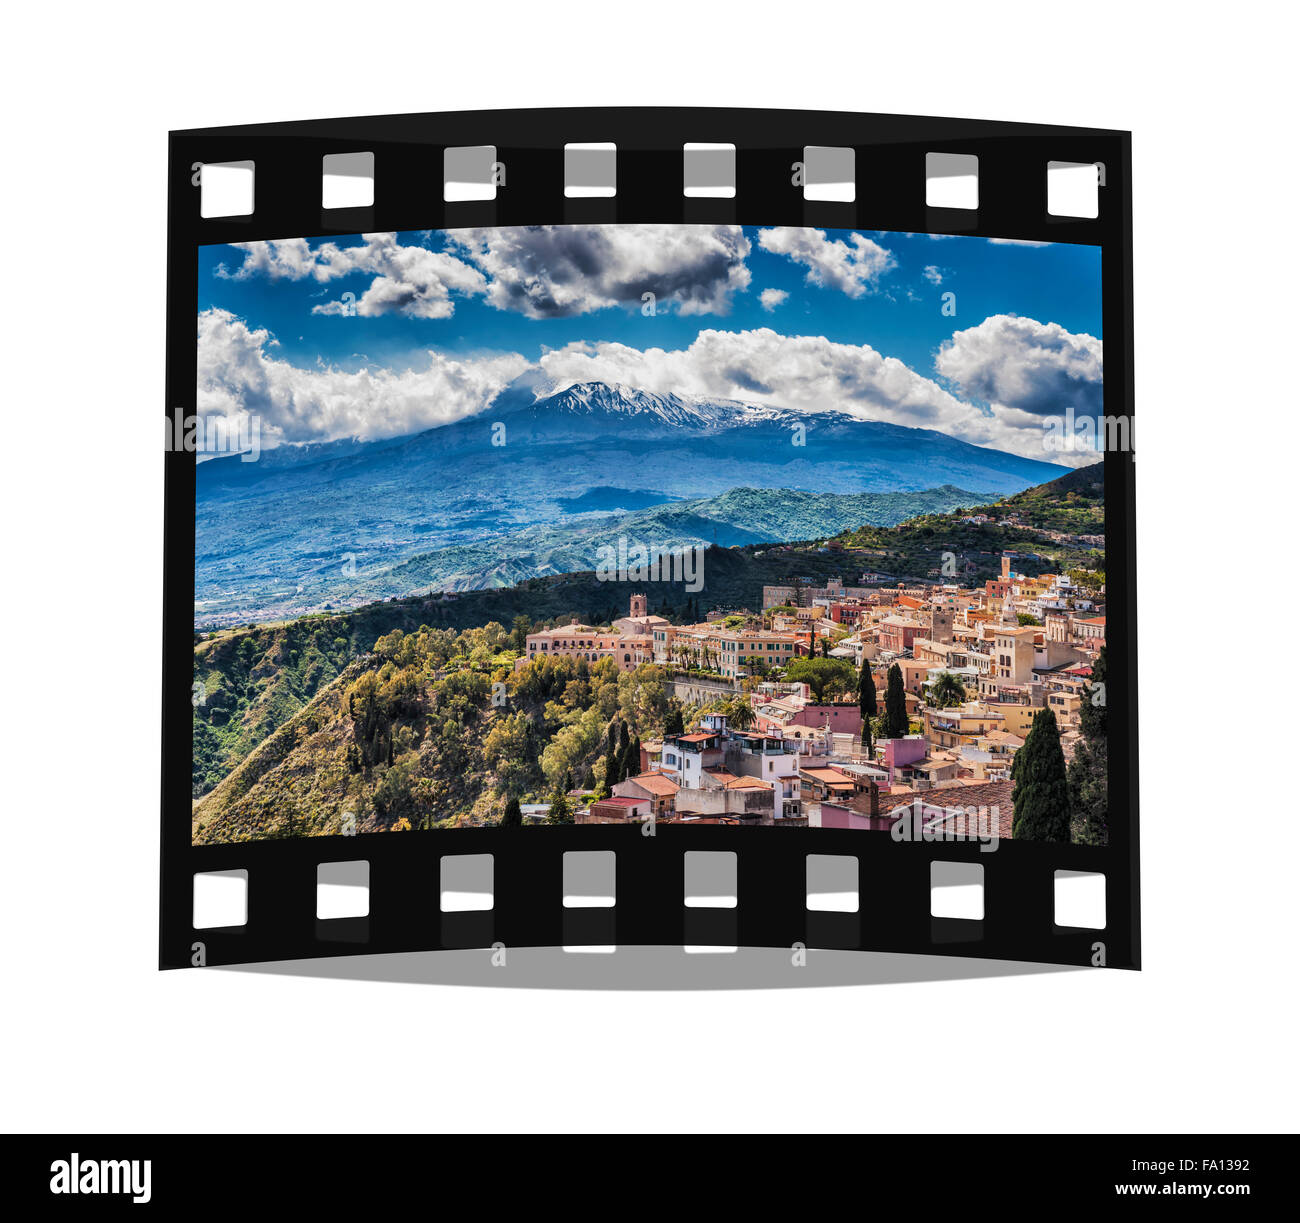 View on the town Taormina and Mount Etna, Province Messina, Sicily, Italy, Europe - Stock Image